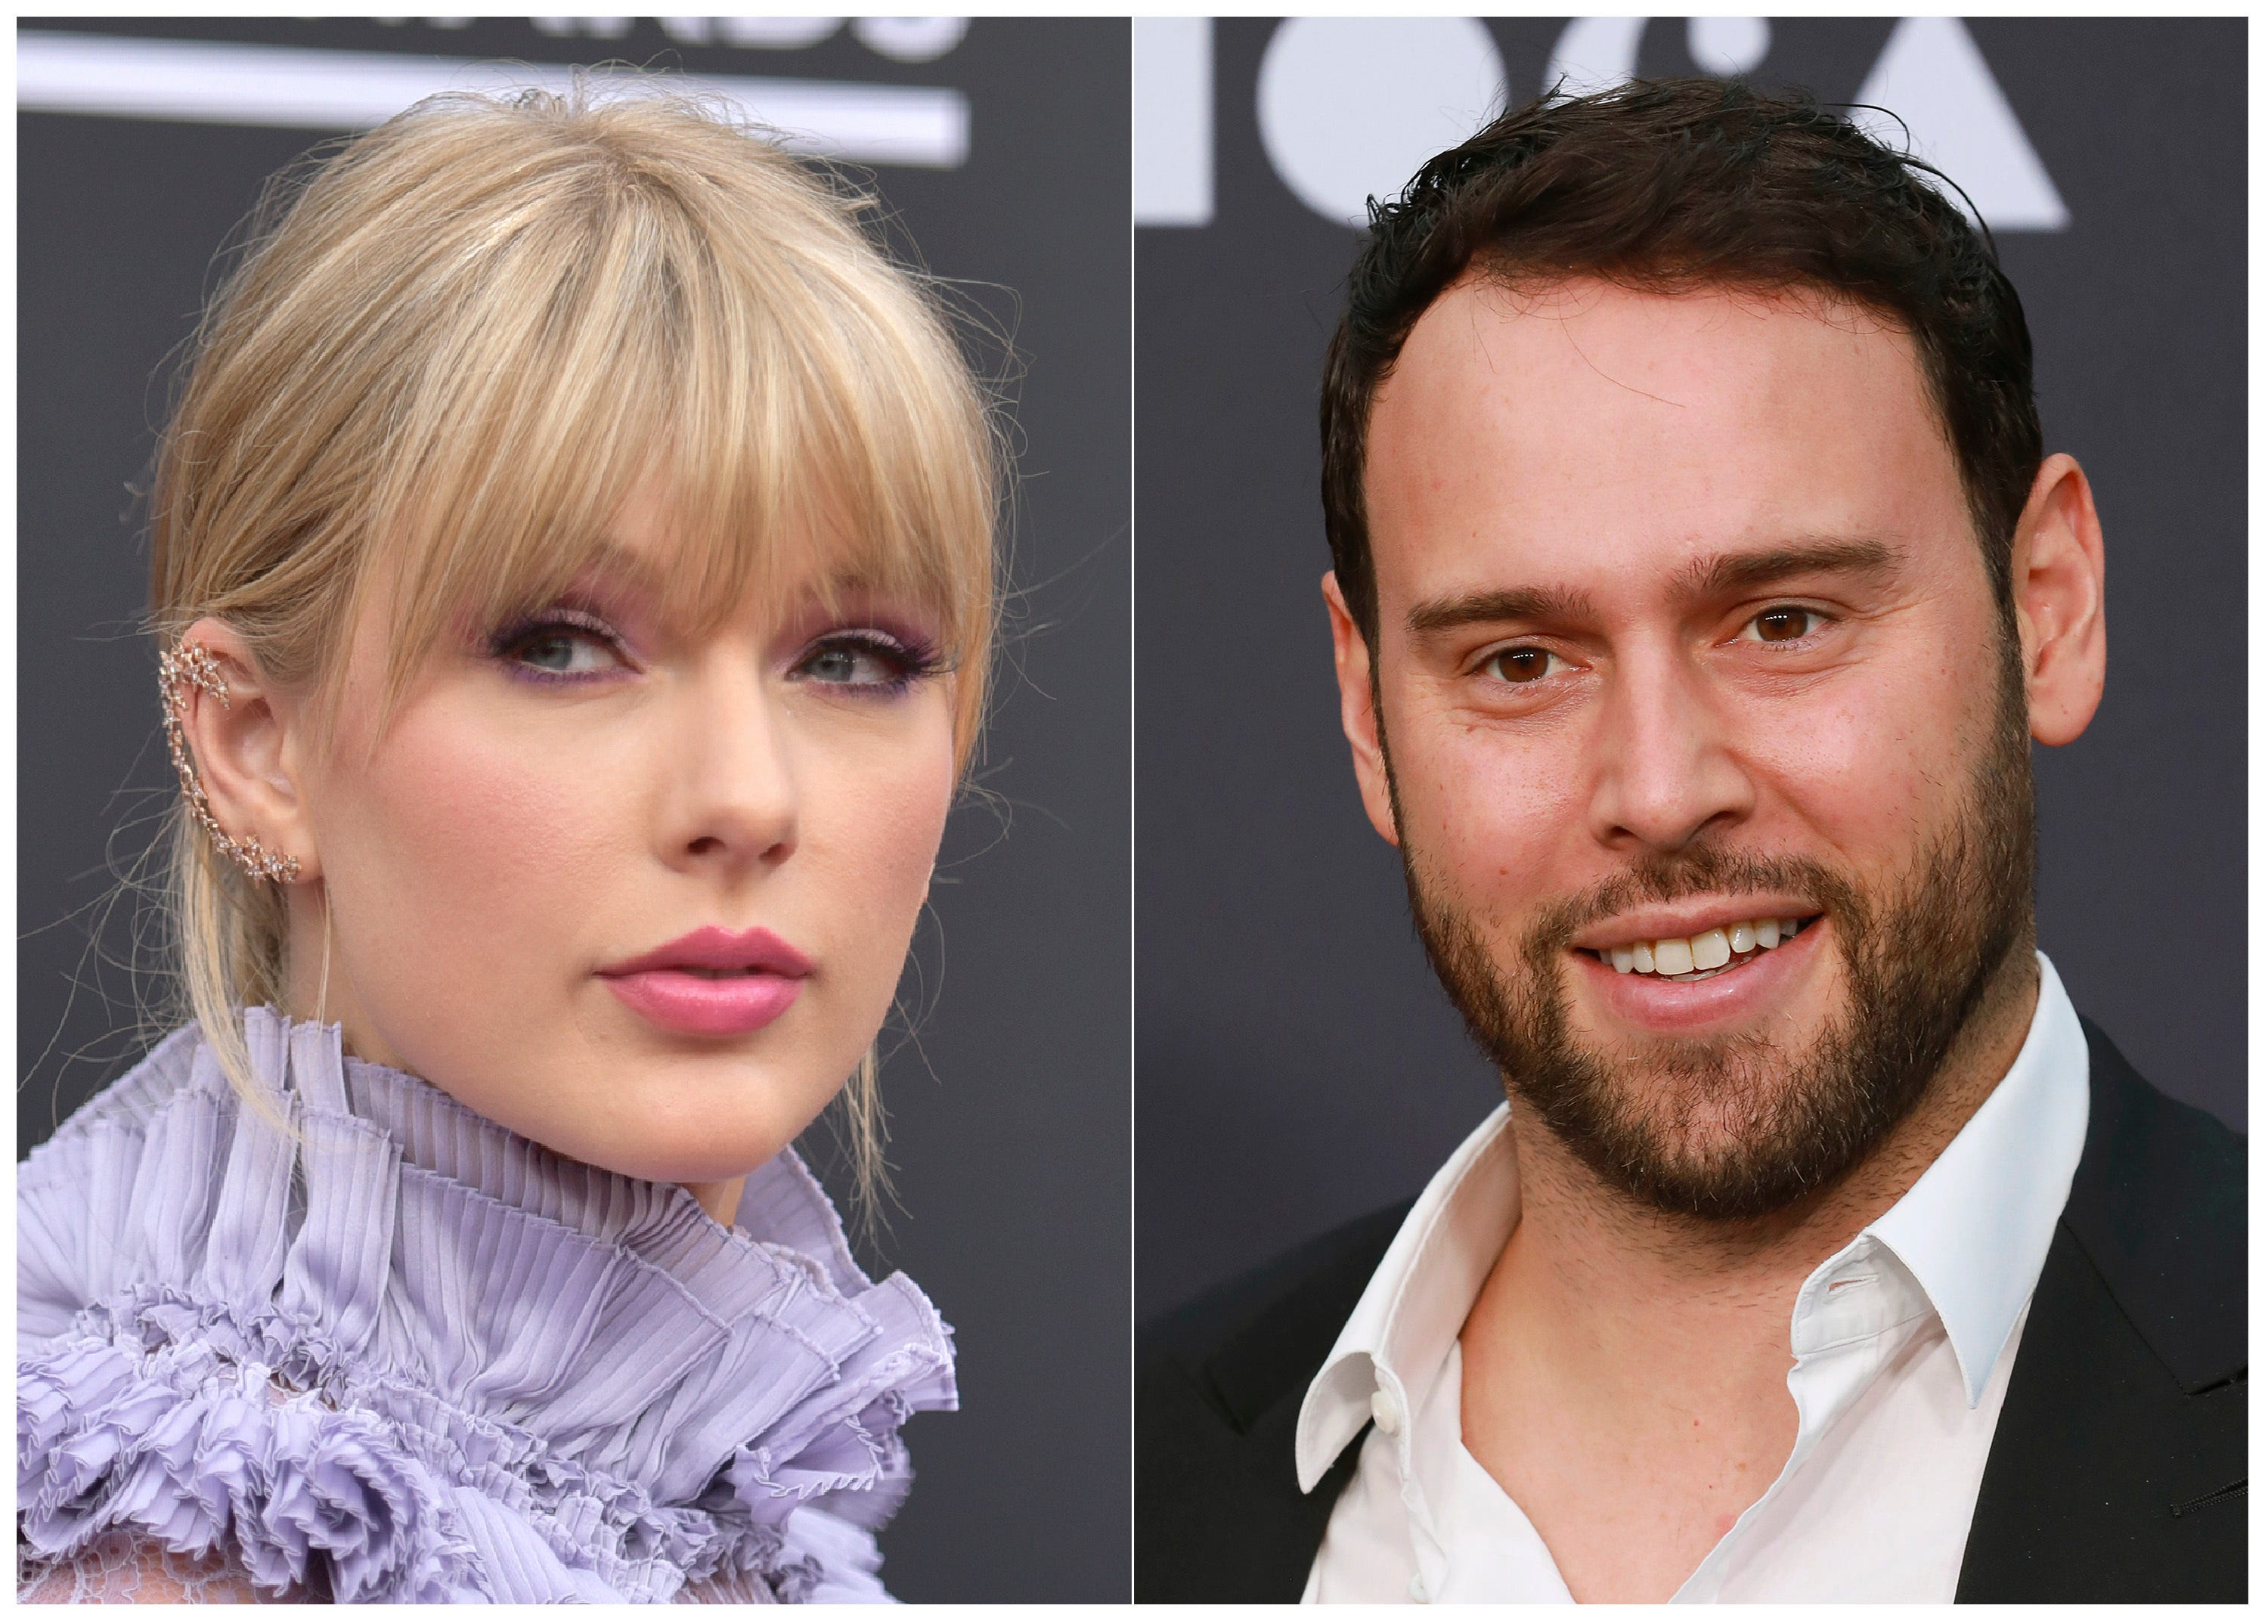 Taylor Swift Breaks Silence On Scooter Braun Selling Her Masters